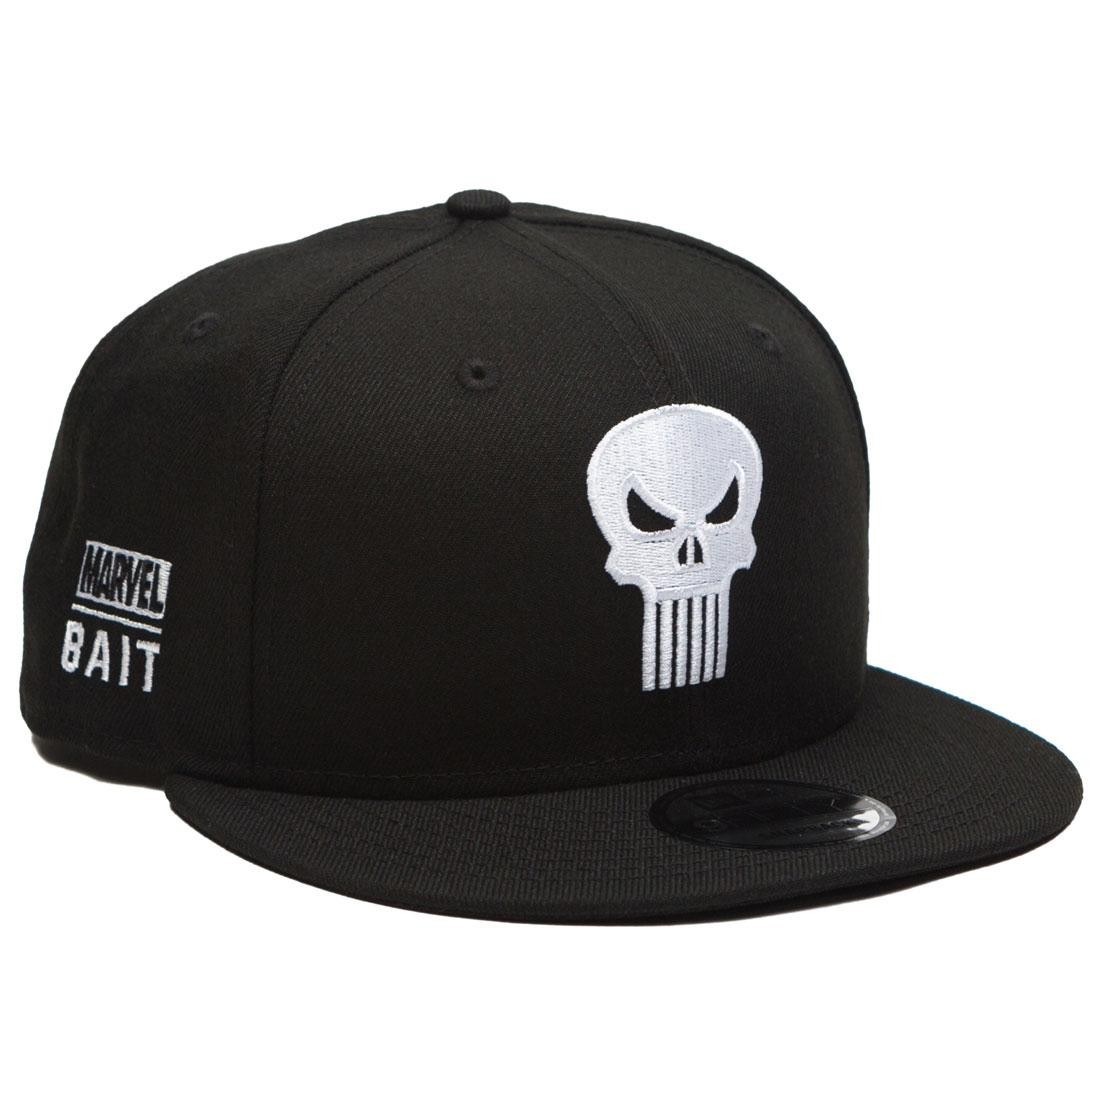 buy popular 8e061 93d36 ... netherlands bait x marvel x new era 9fifty punisher black snapback cap  black 04e45 54f83